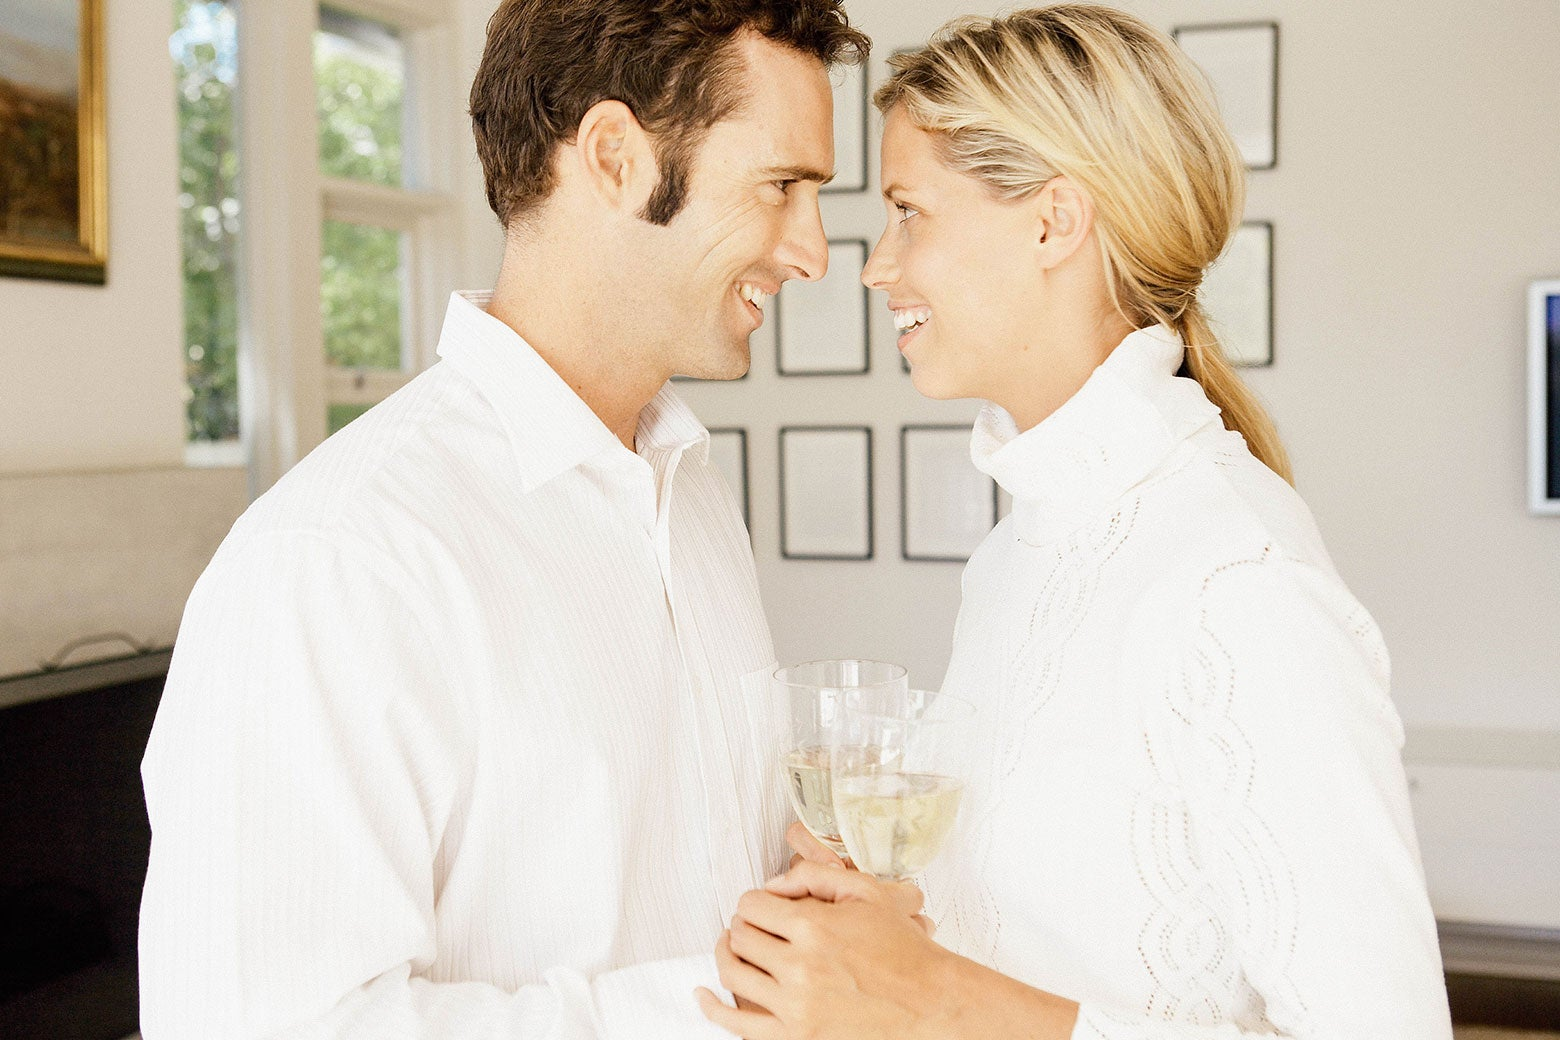 A man and a woman dressed all in white and holding a light-colored beverage grin into each other's faces.